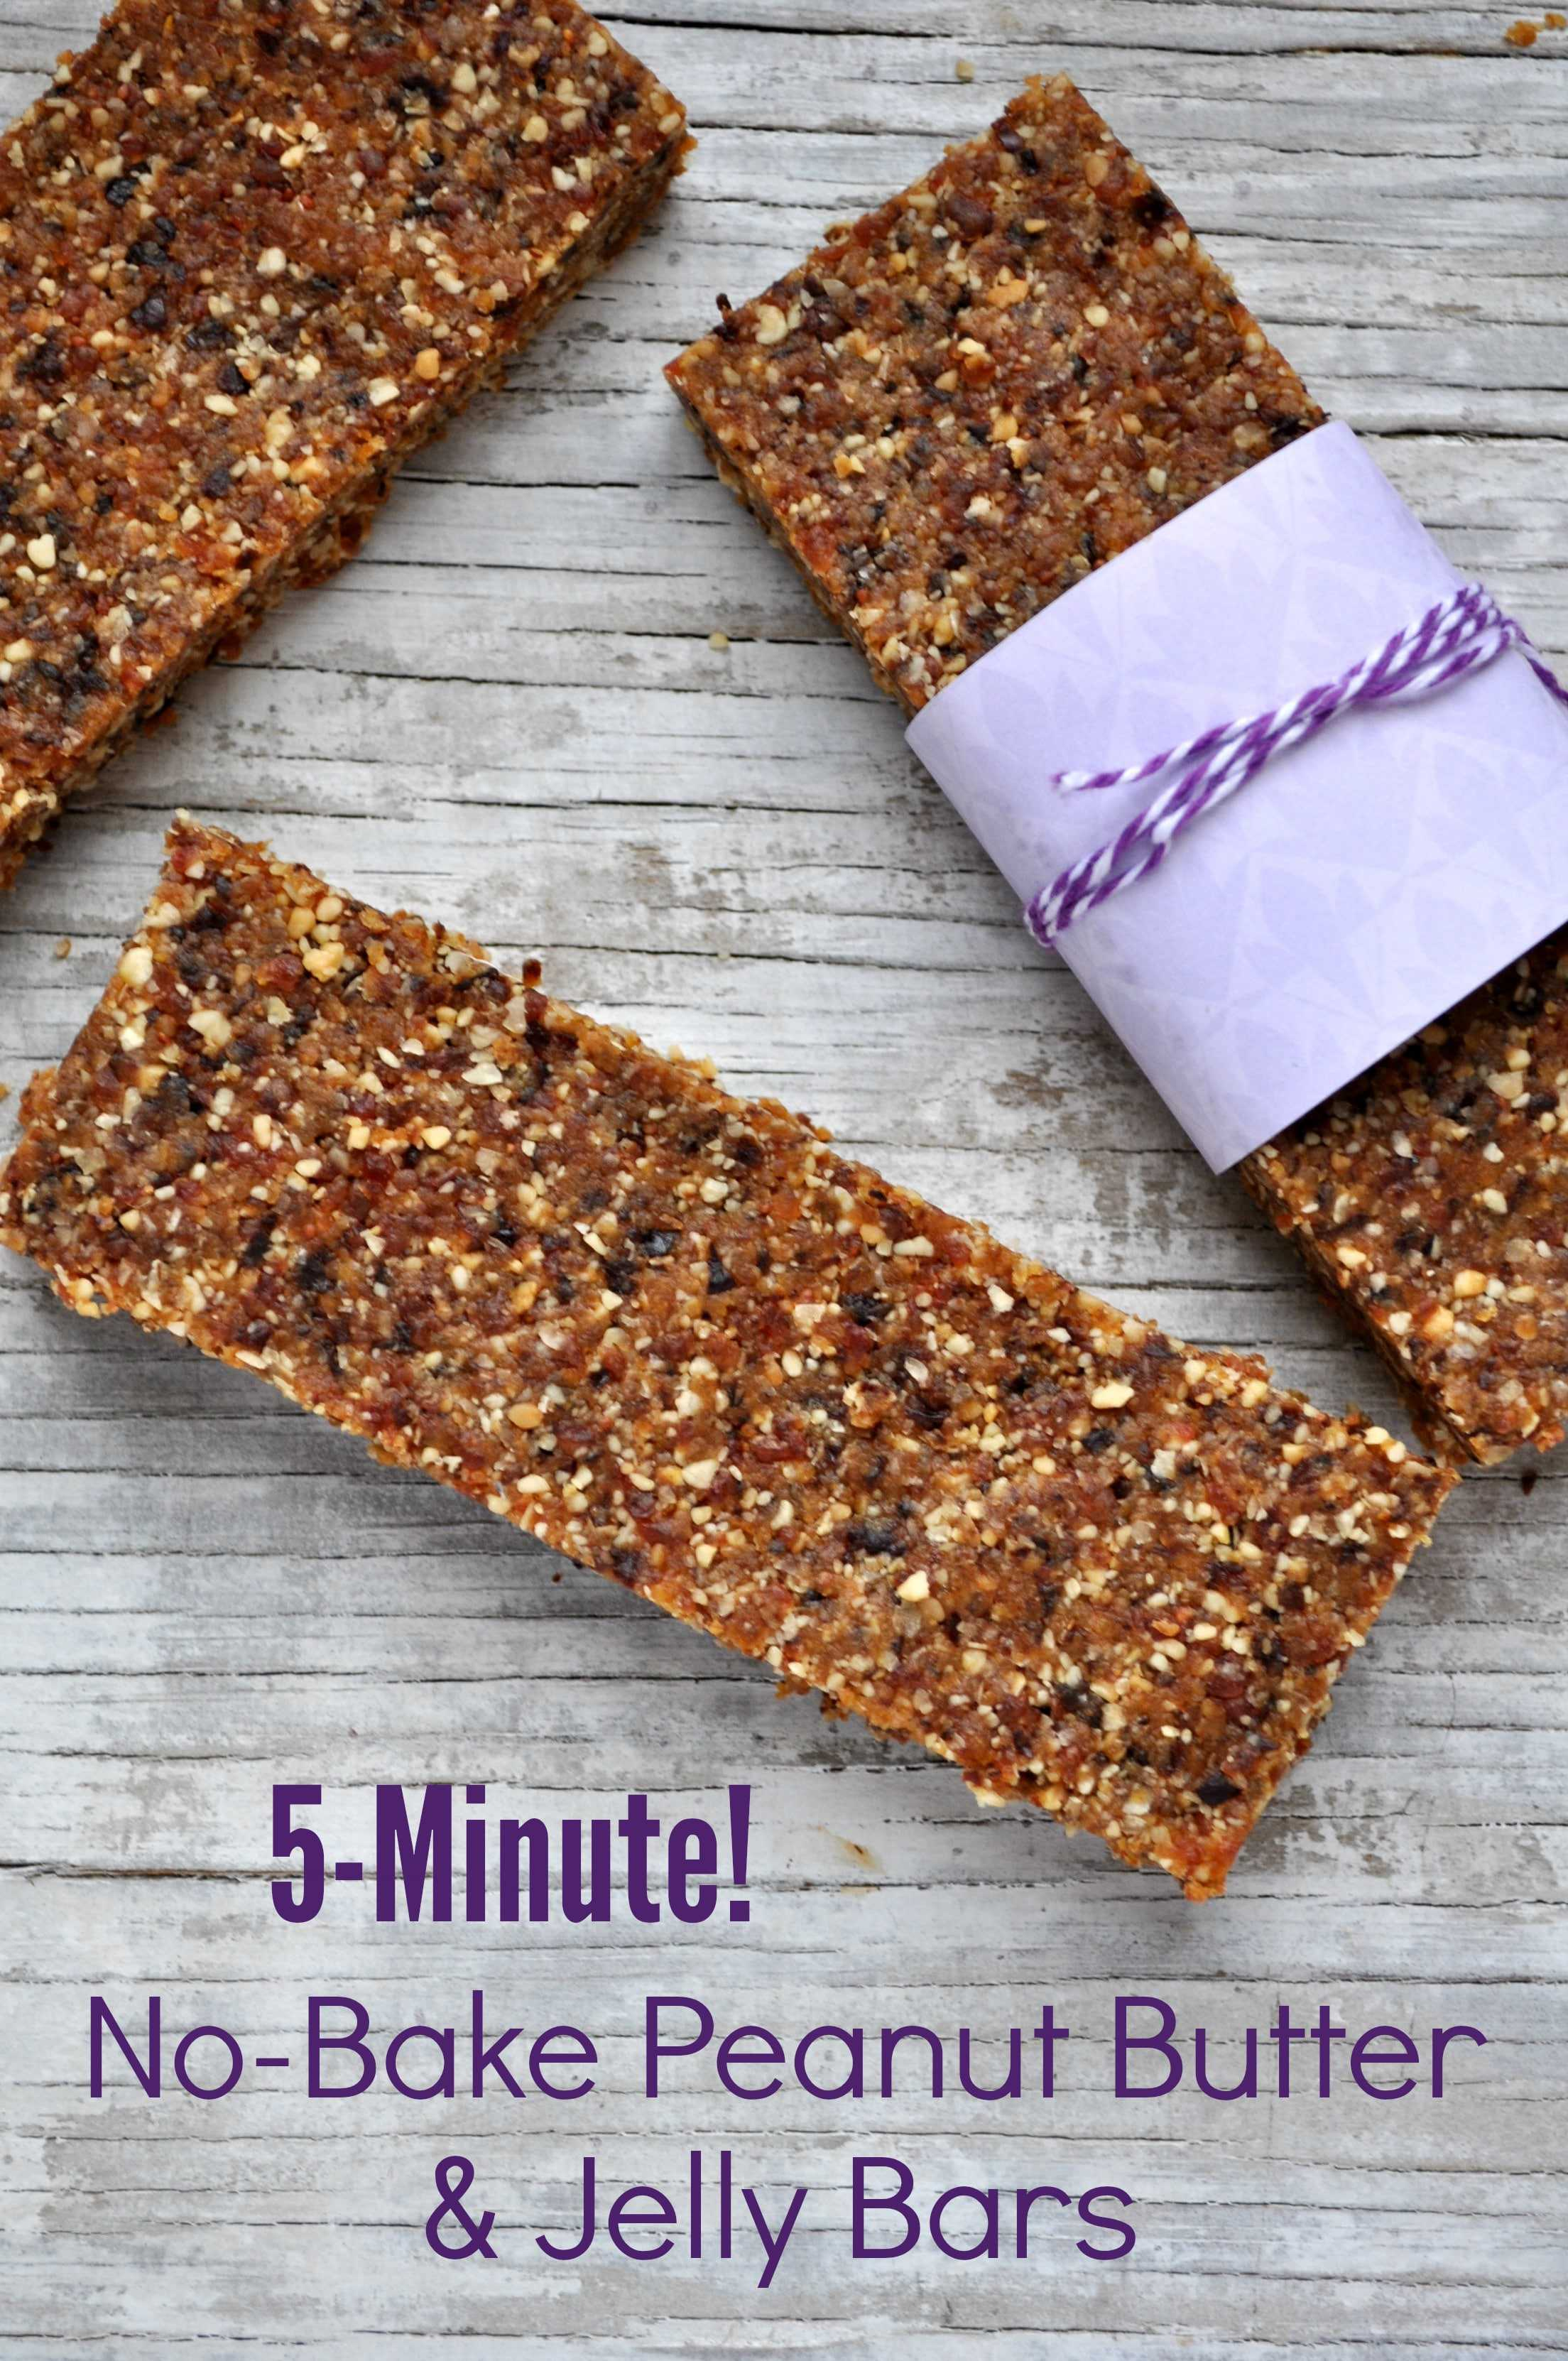 5-Minute No-Bake Peanut Butter and Jelly Bars - The ...